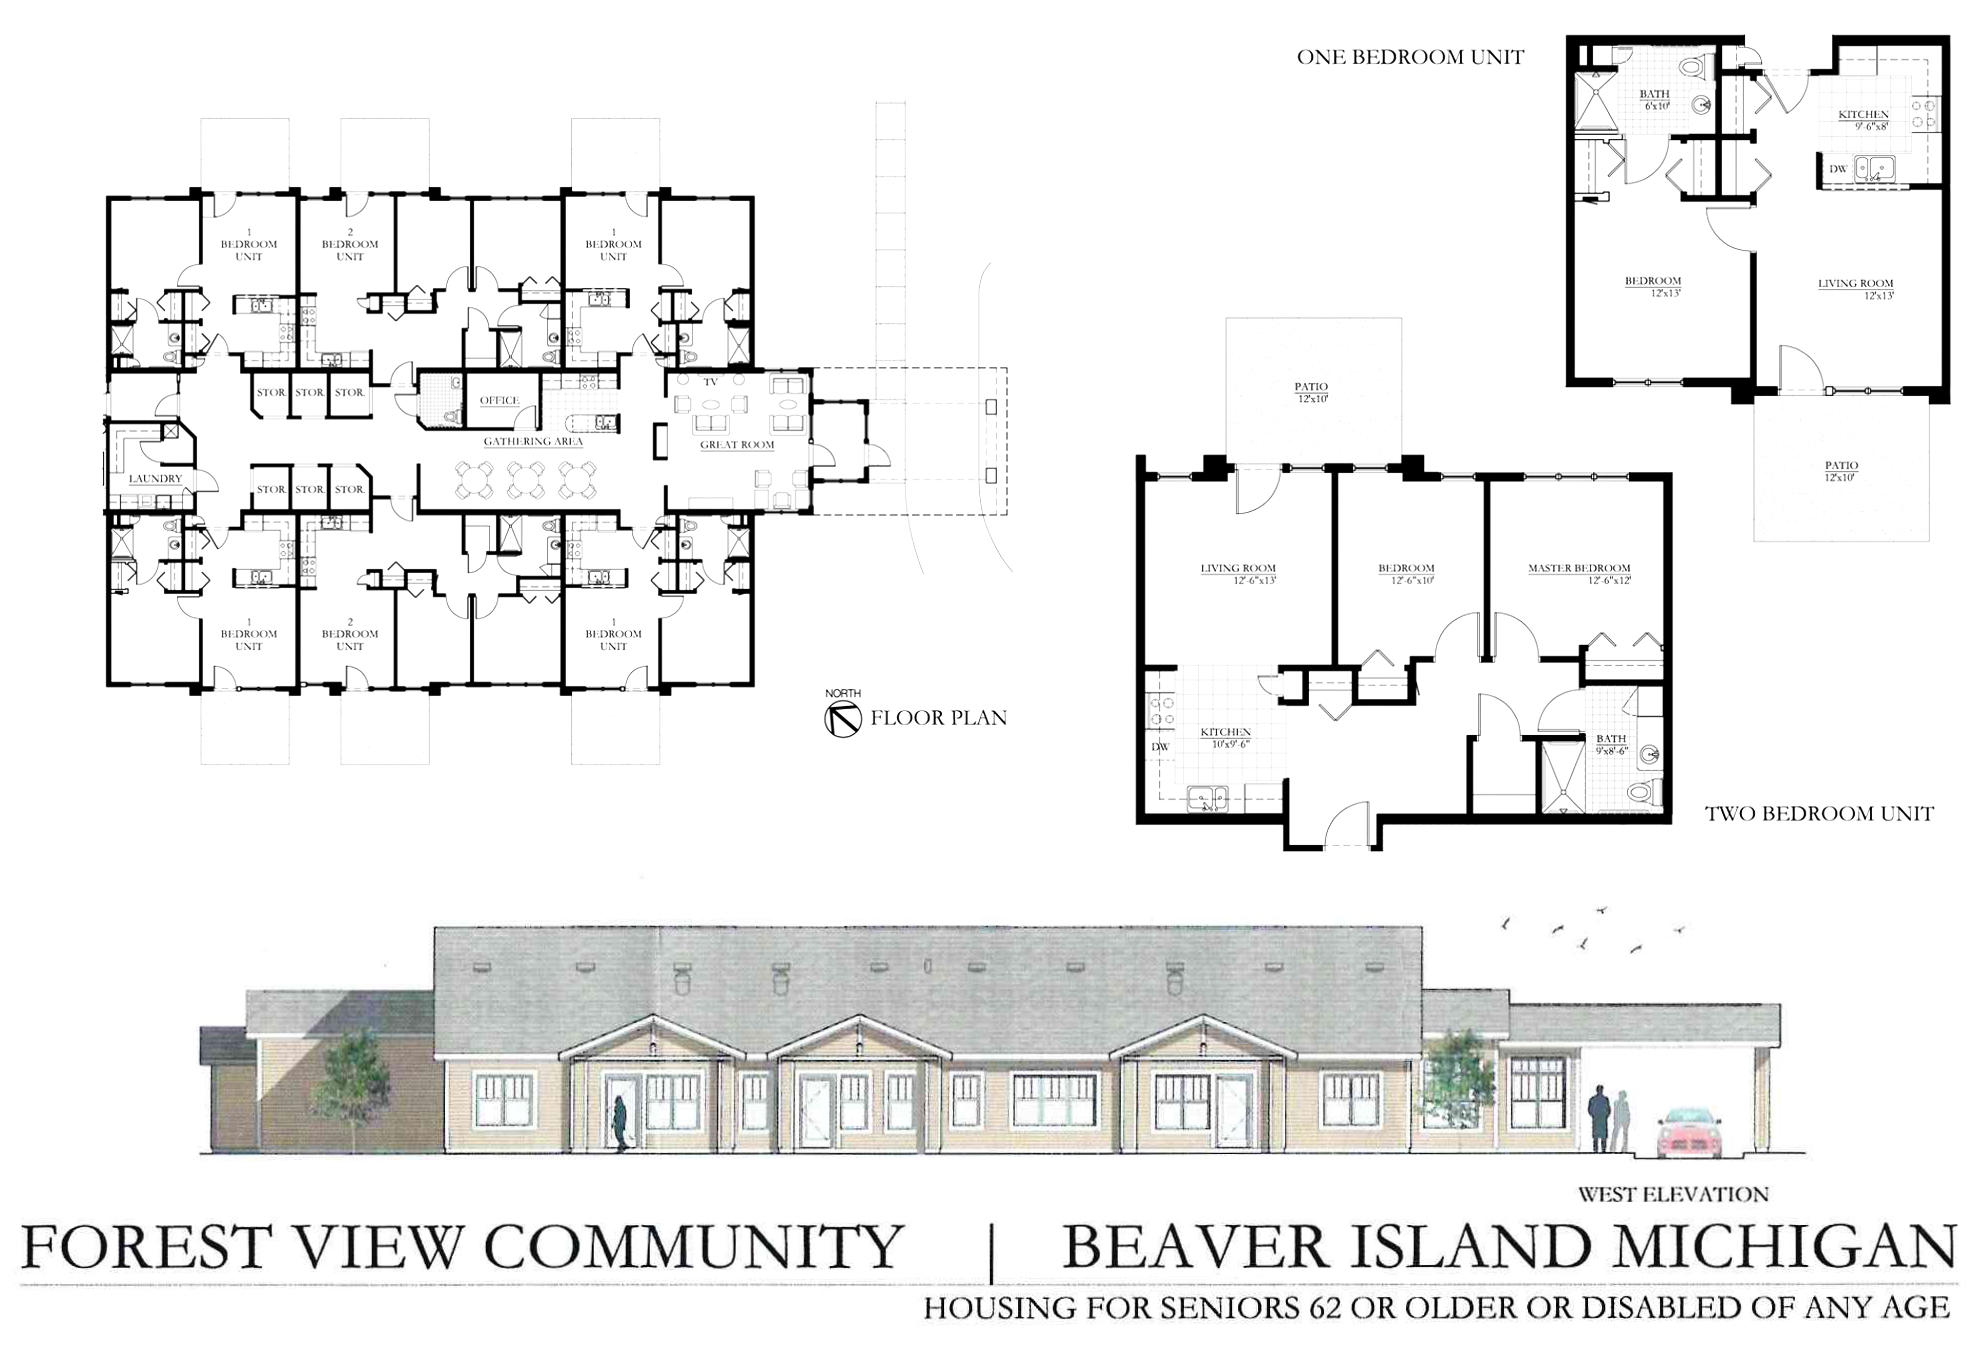 Forest View Community Beaver Island Housing for Seniors 62 or older or disabled of any age